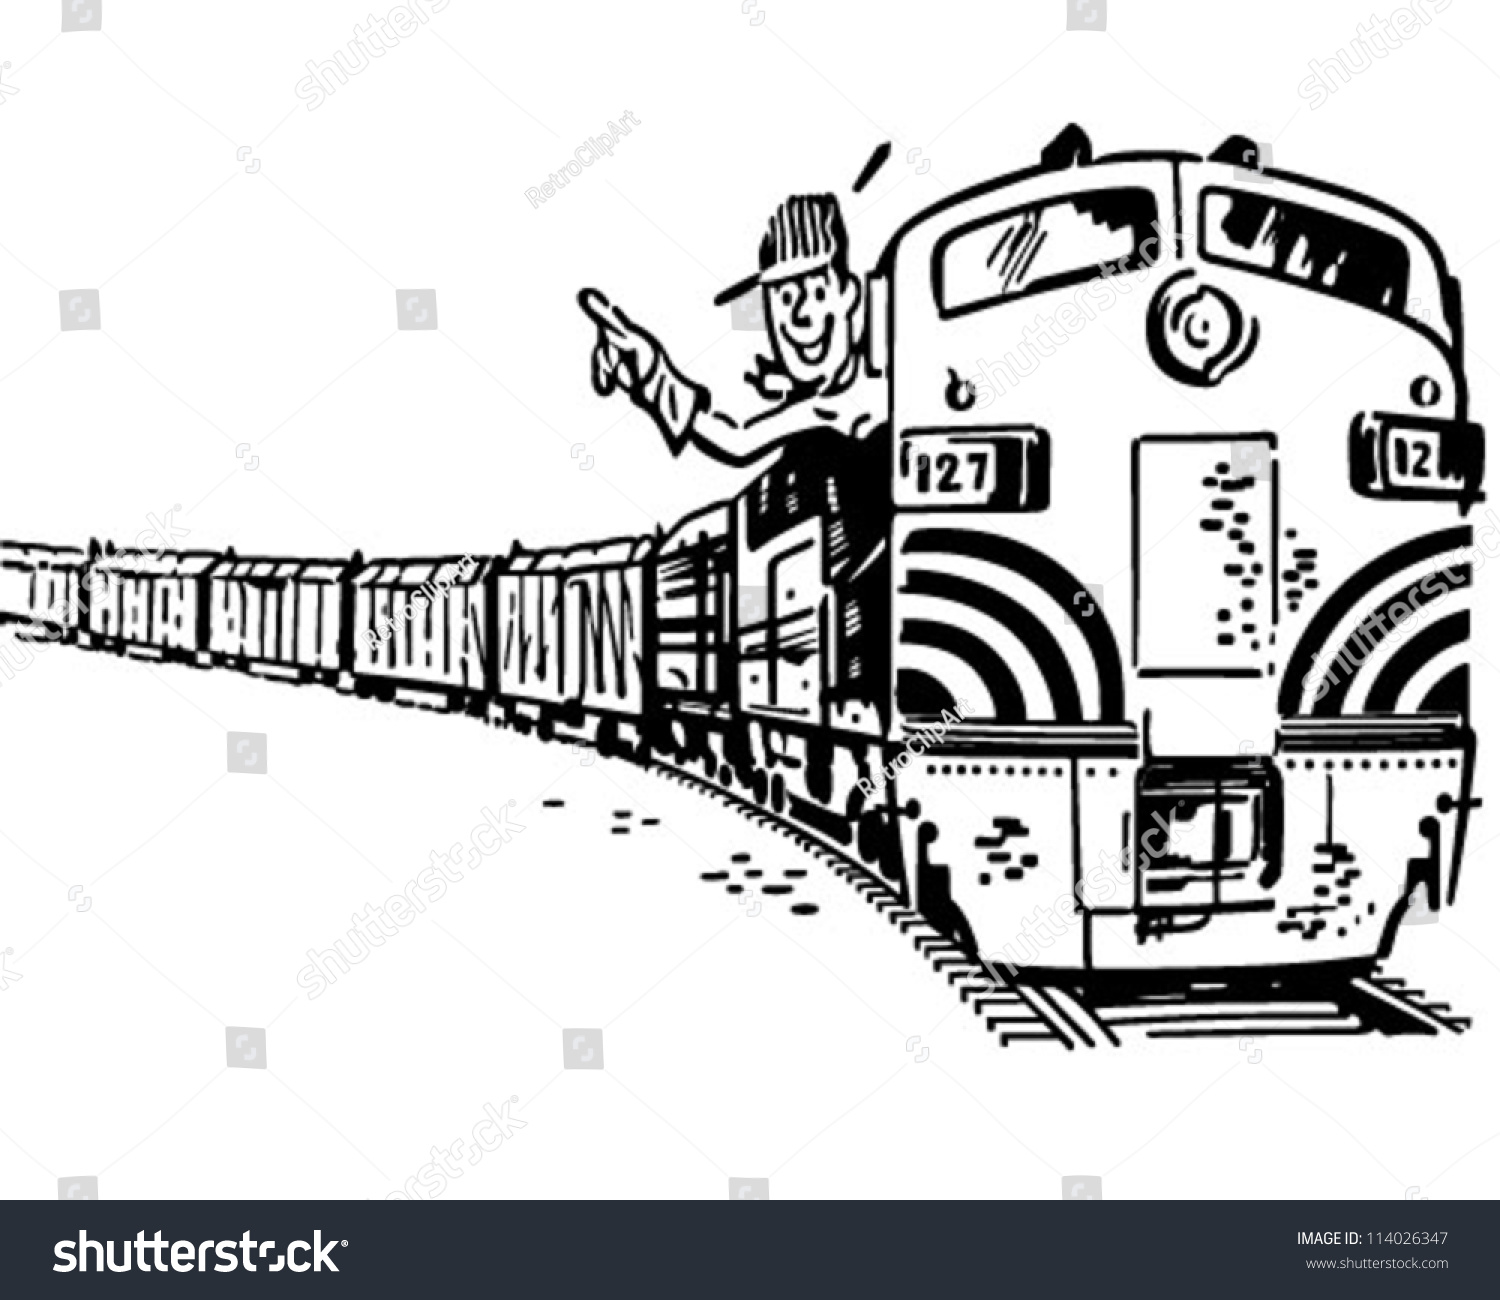 electric train clipart black and white - photo #36